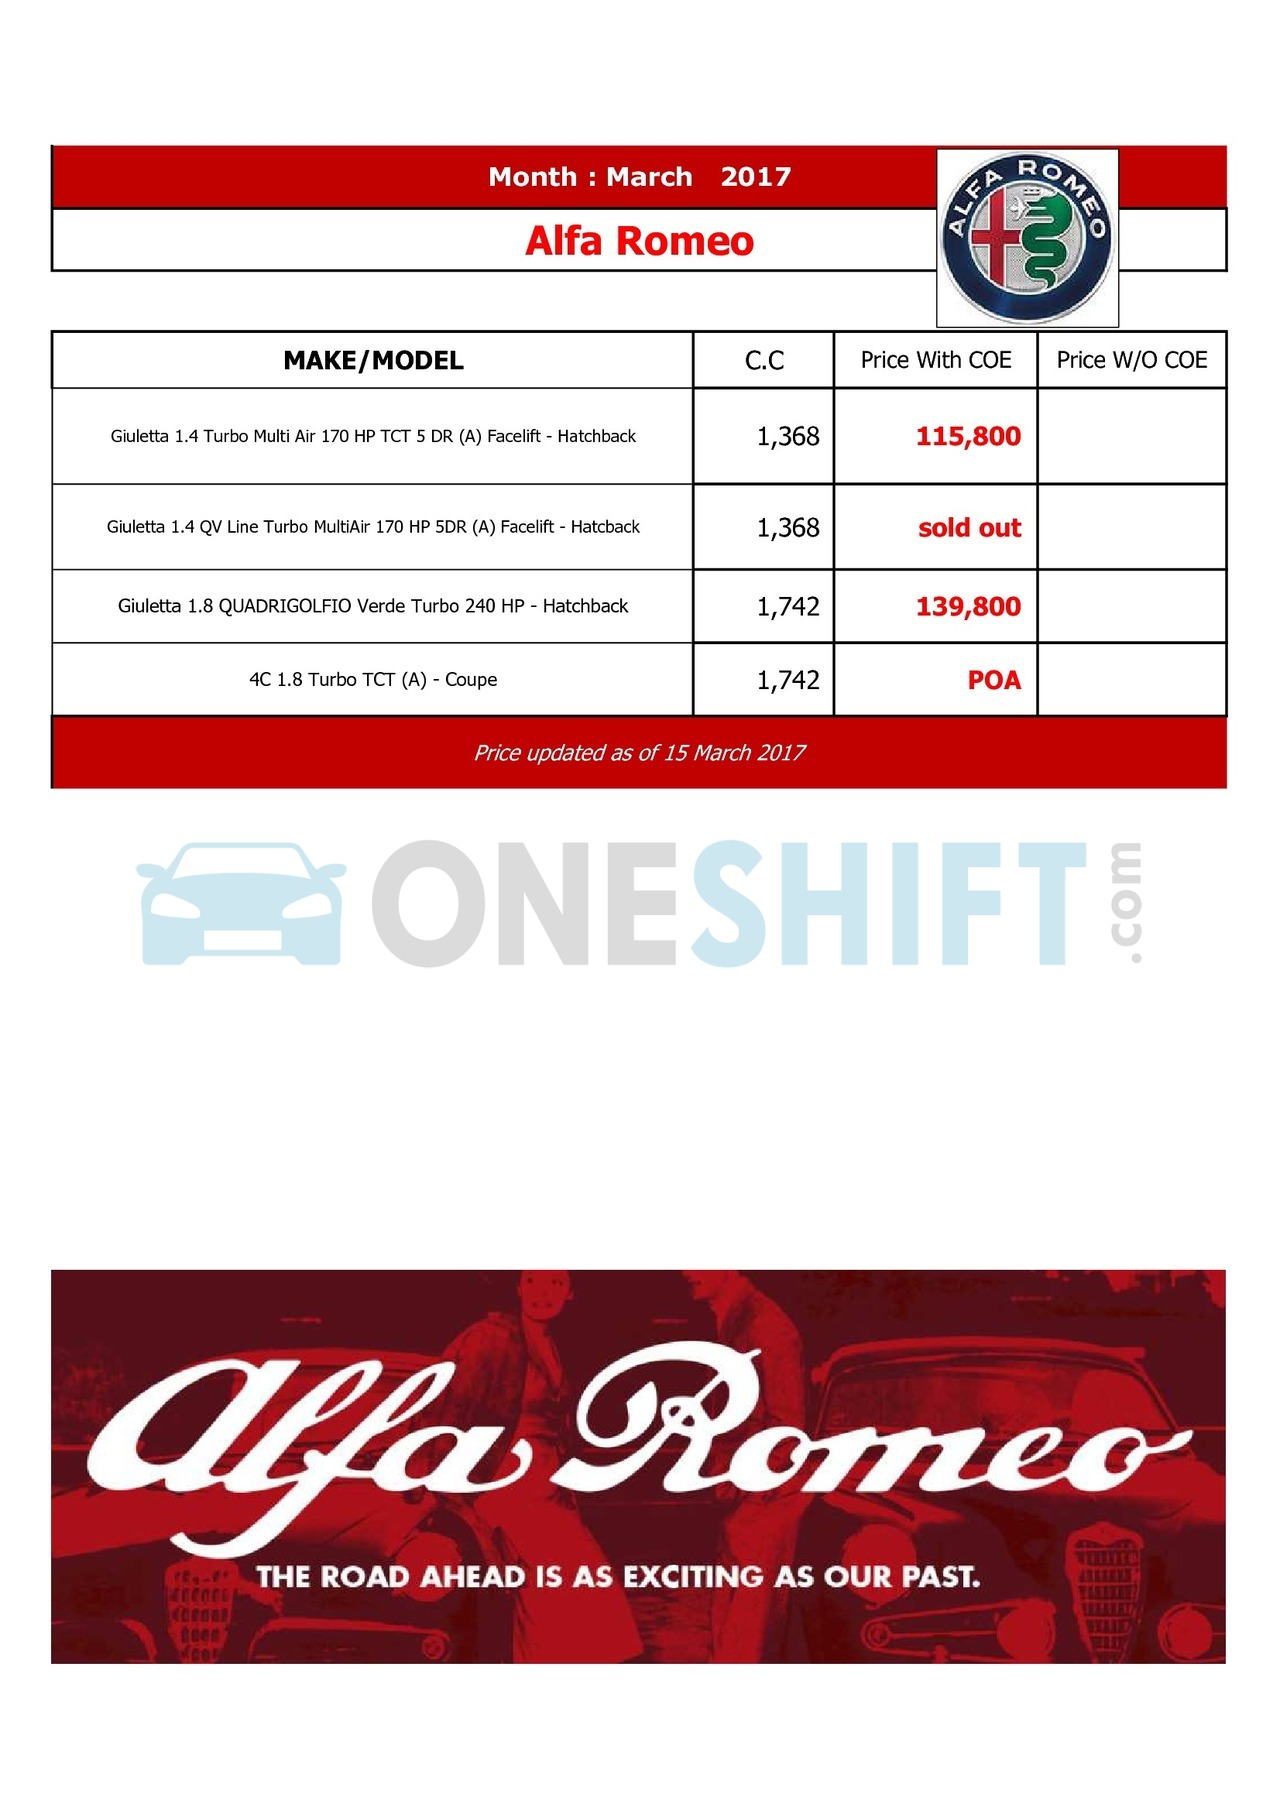 alfa-romeo Price List 3-16-2017 Page 1